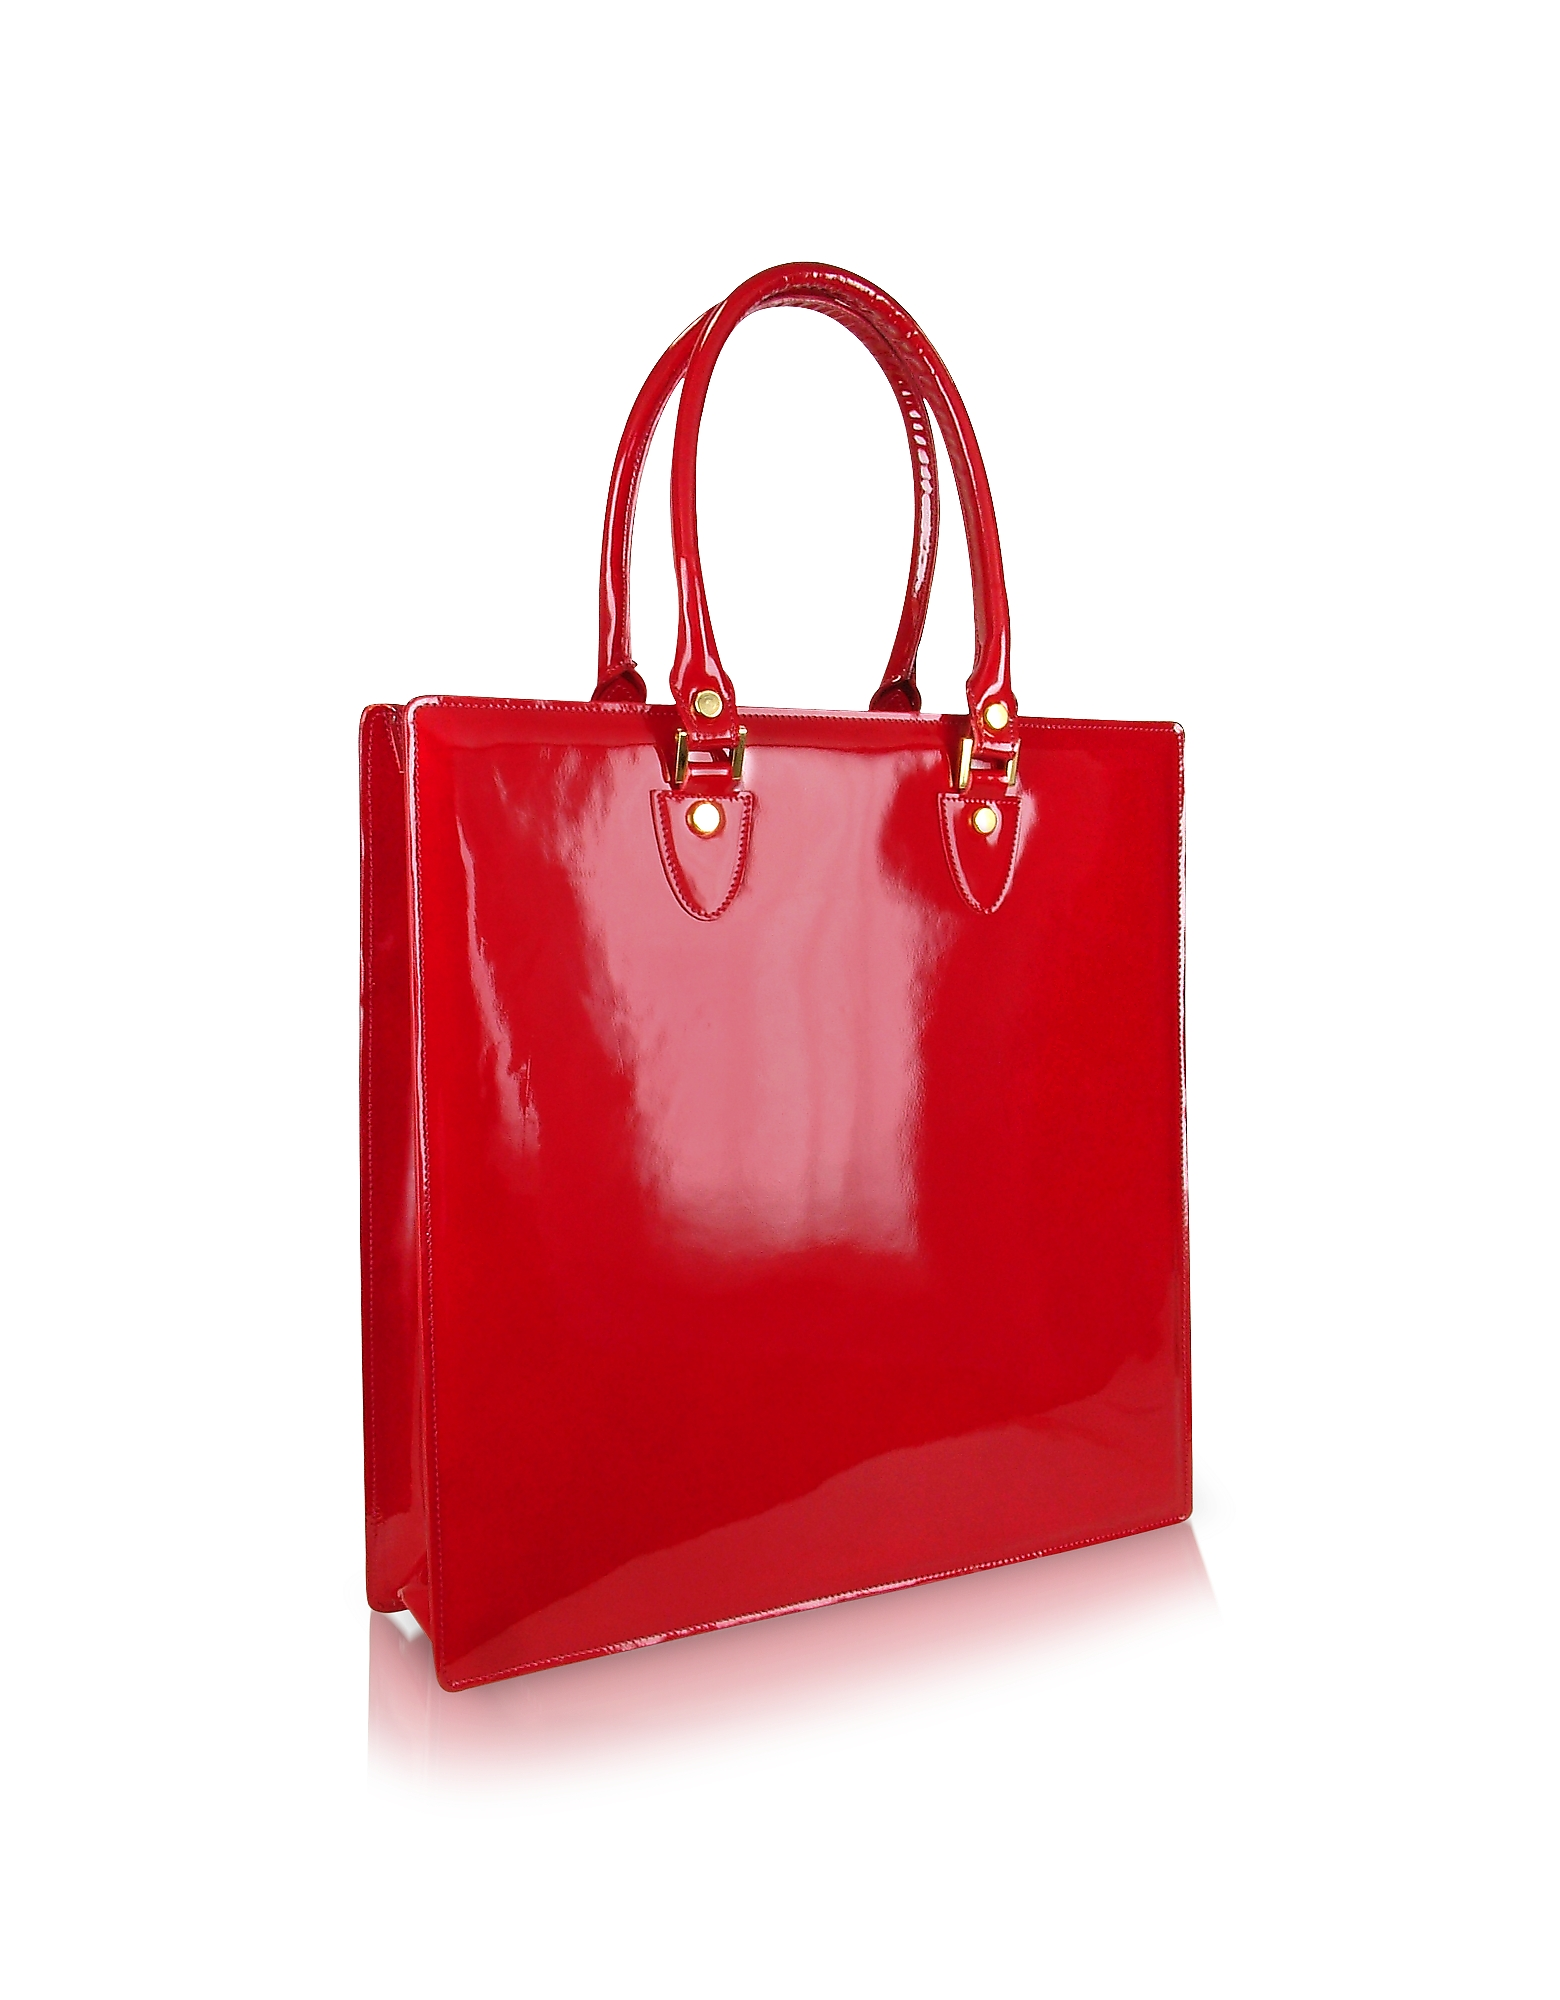 Image of L.A.P.A. Designer Handbags, Ruby Red Patent Leather Tote Bag